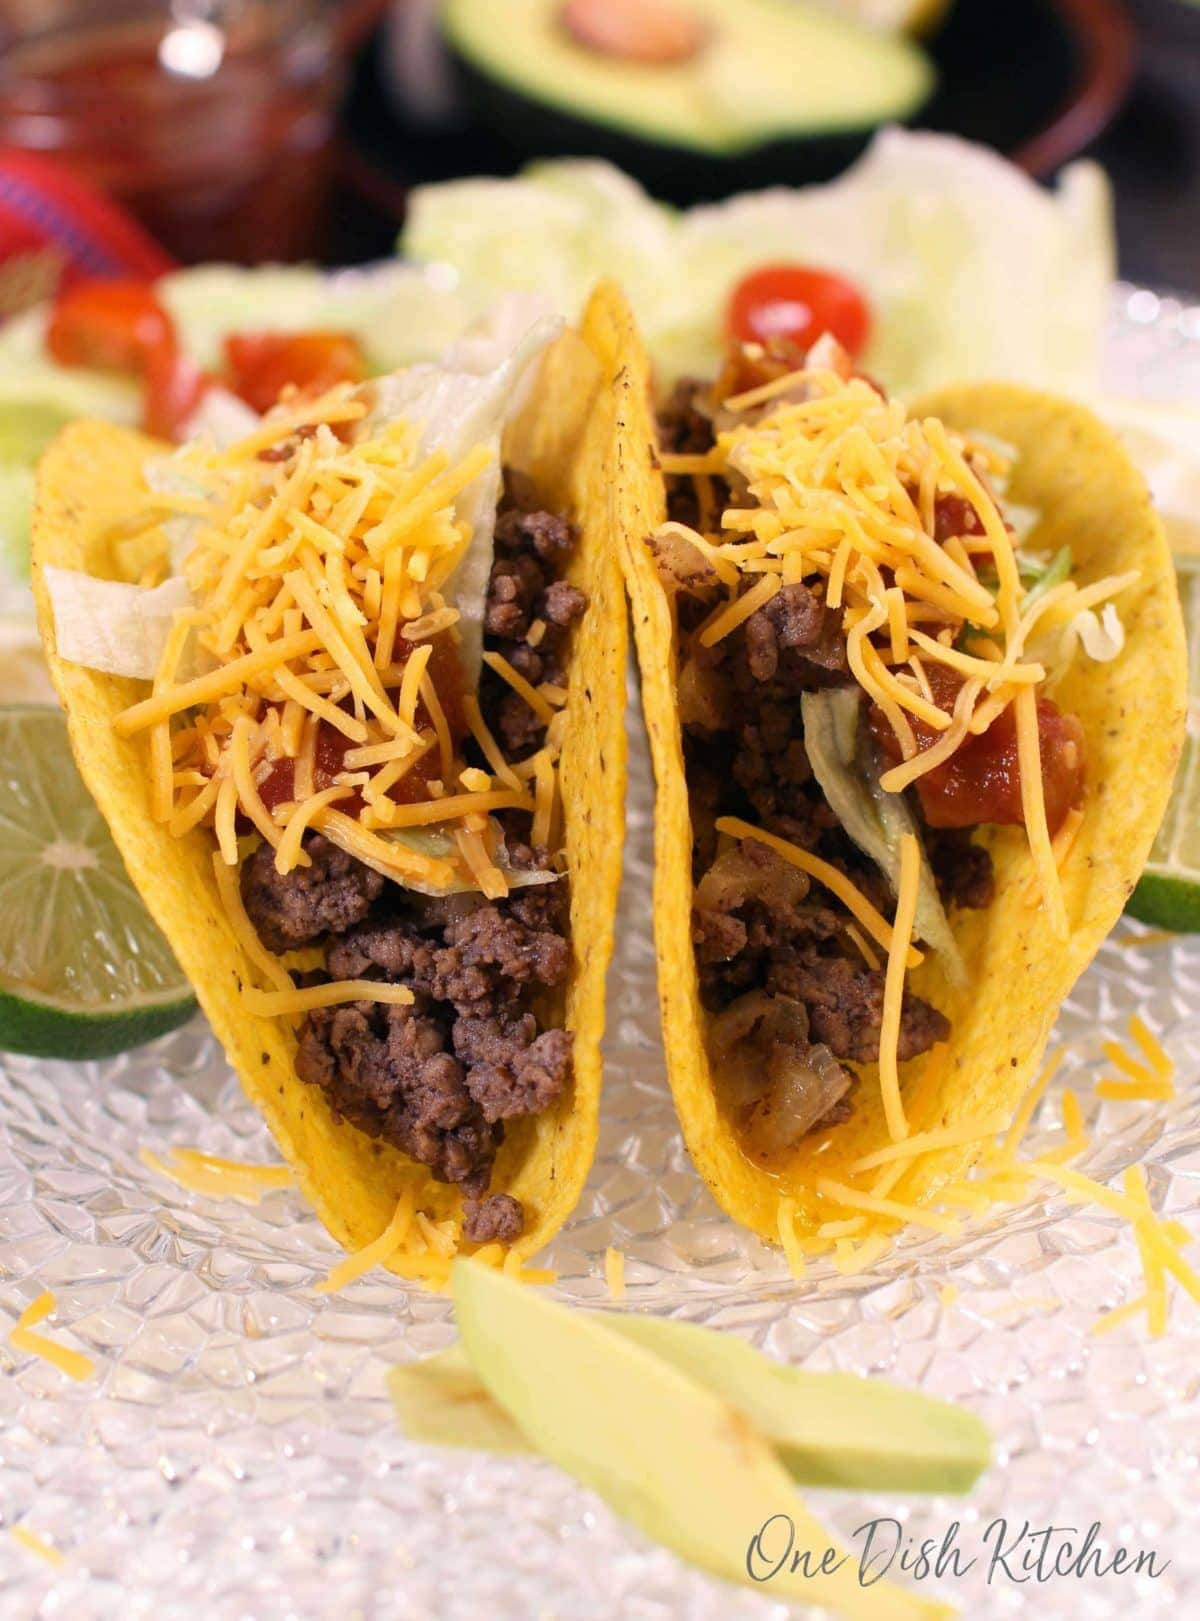 Two beef tacos topped with salsa, lettuce, and shredded cheese on a plate next to sliced lime wheels and tomatoes.